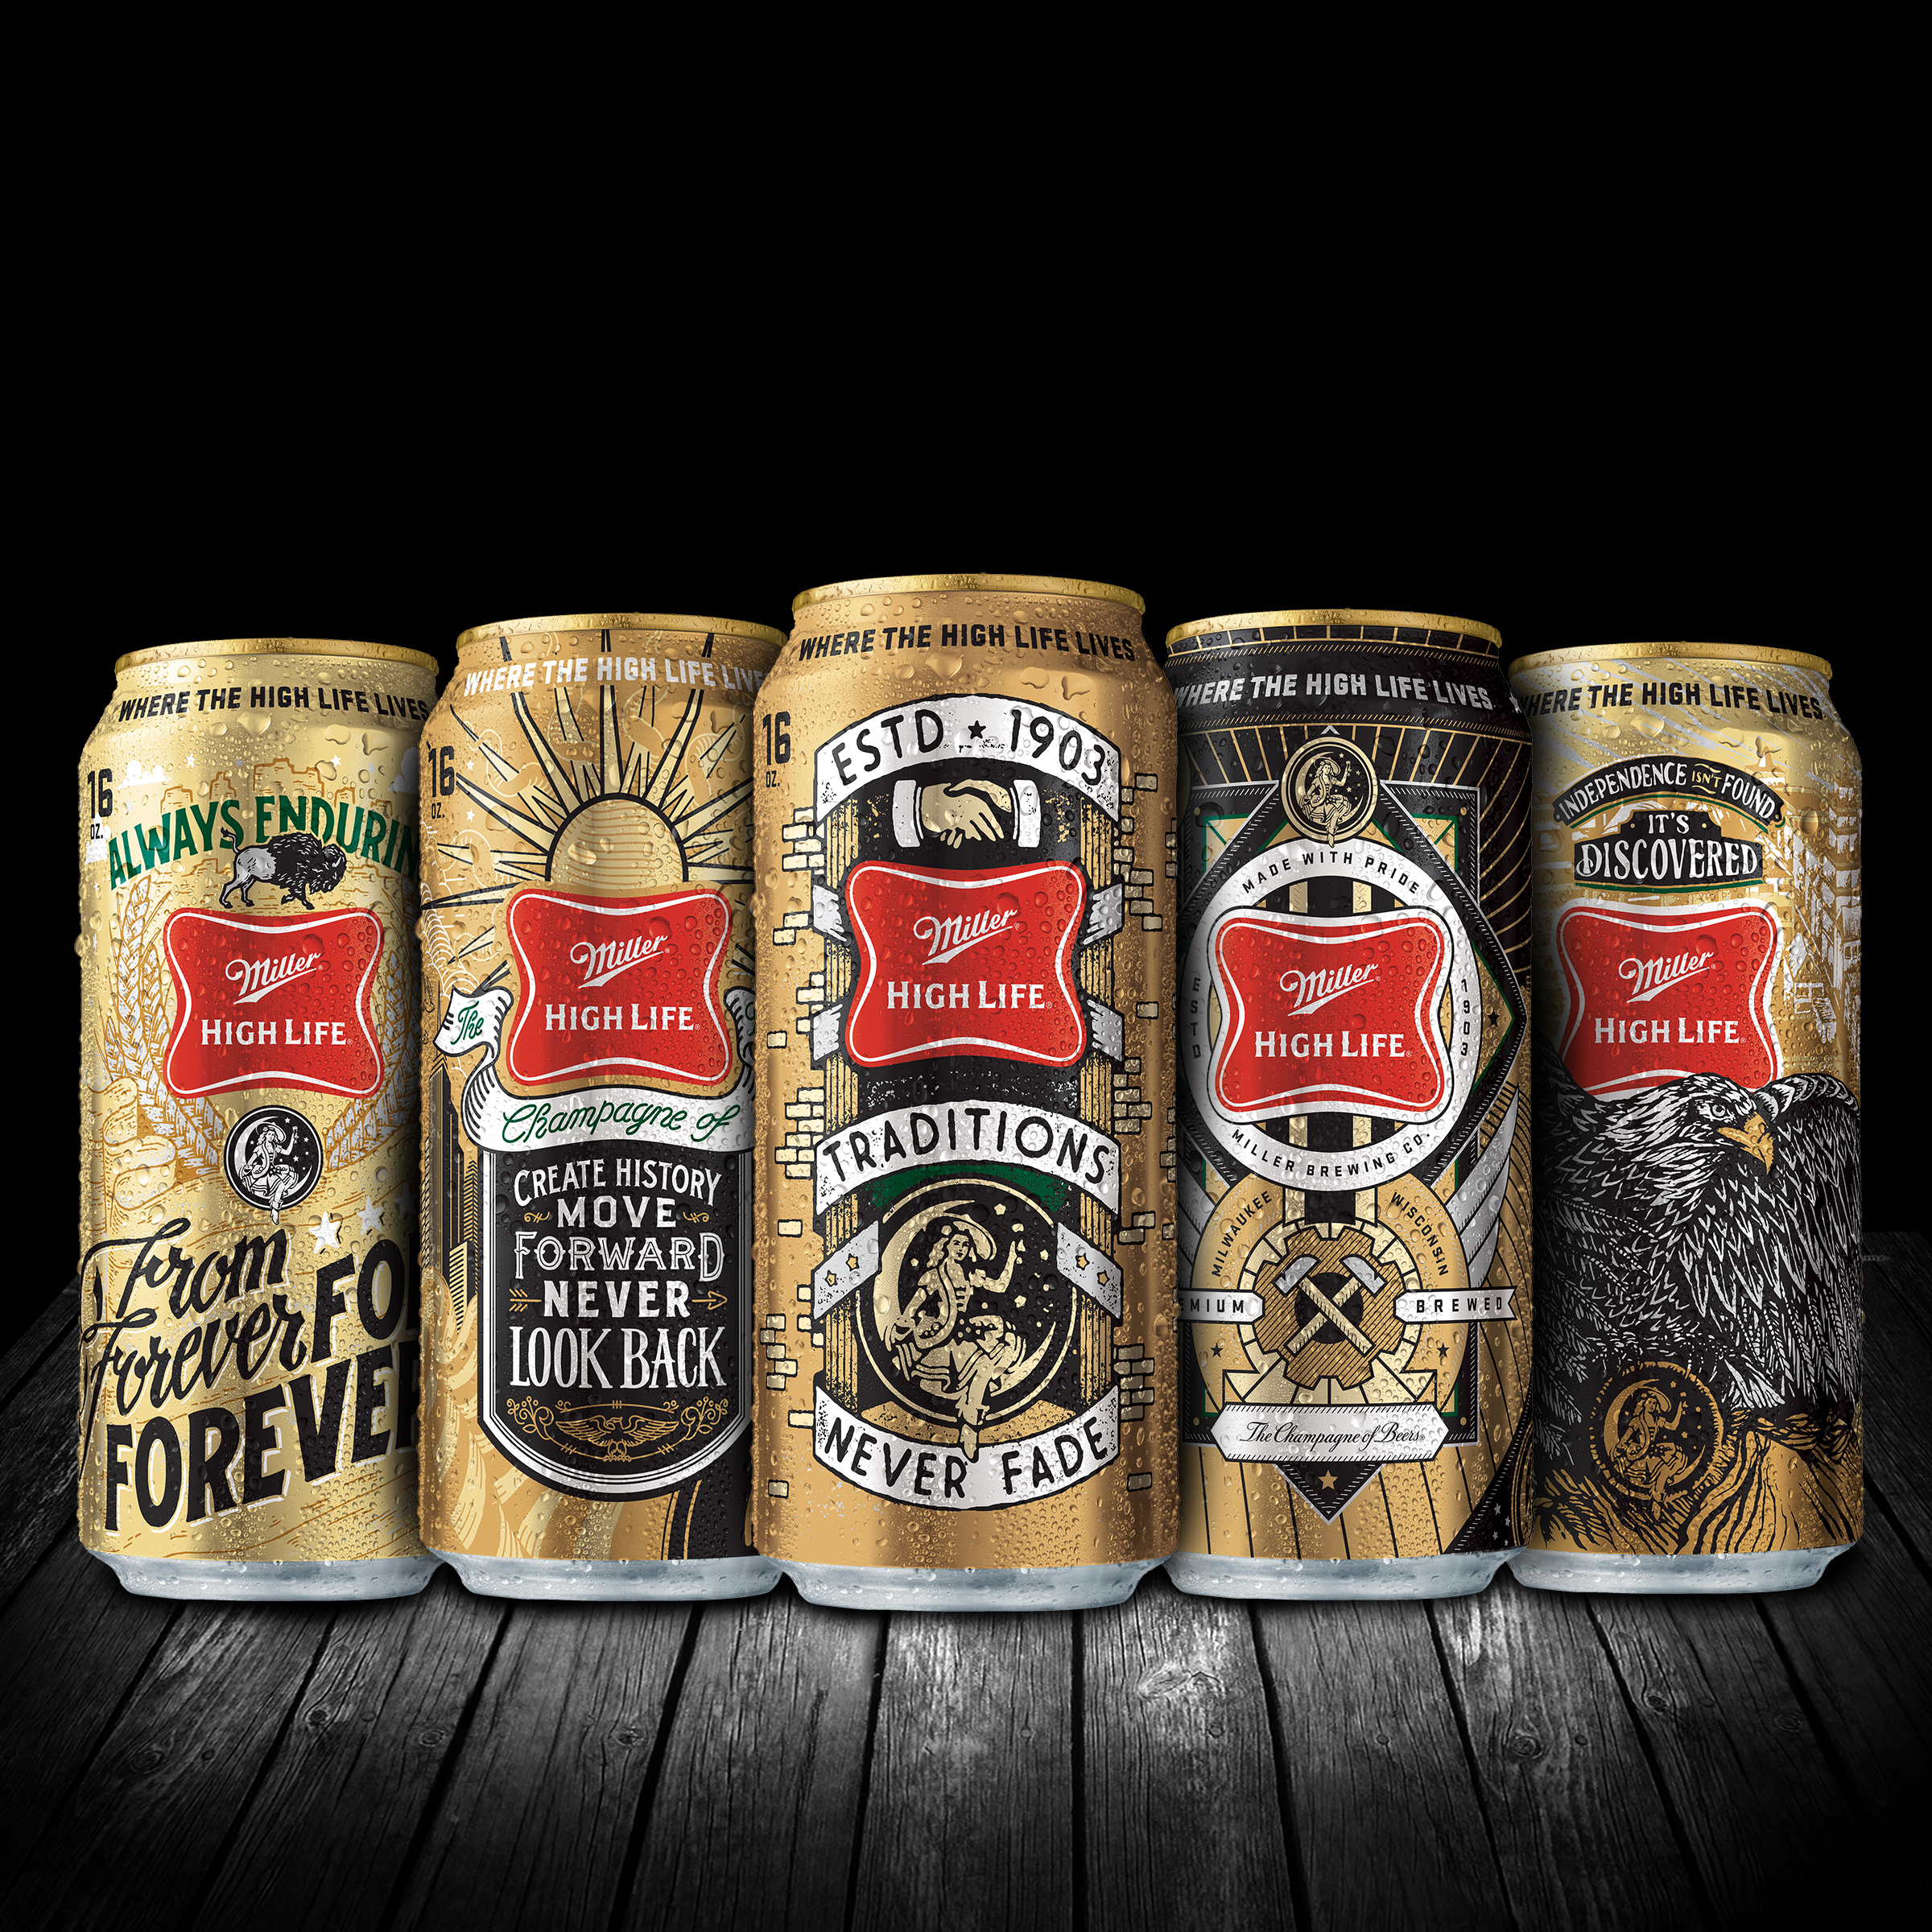 Some of the new Miller High Life cans hitting shelves this summer.